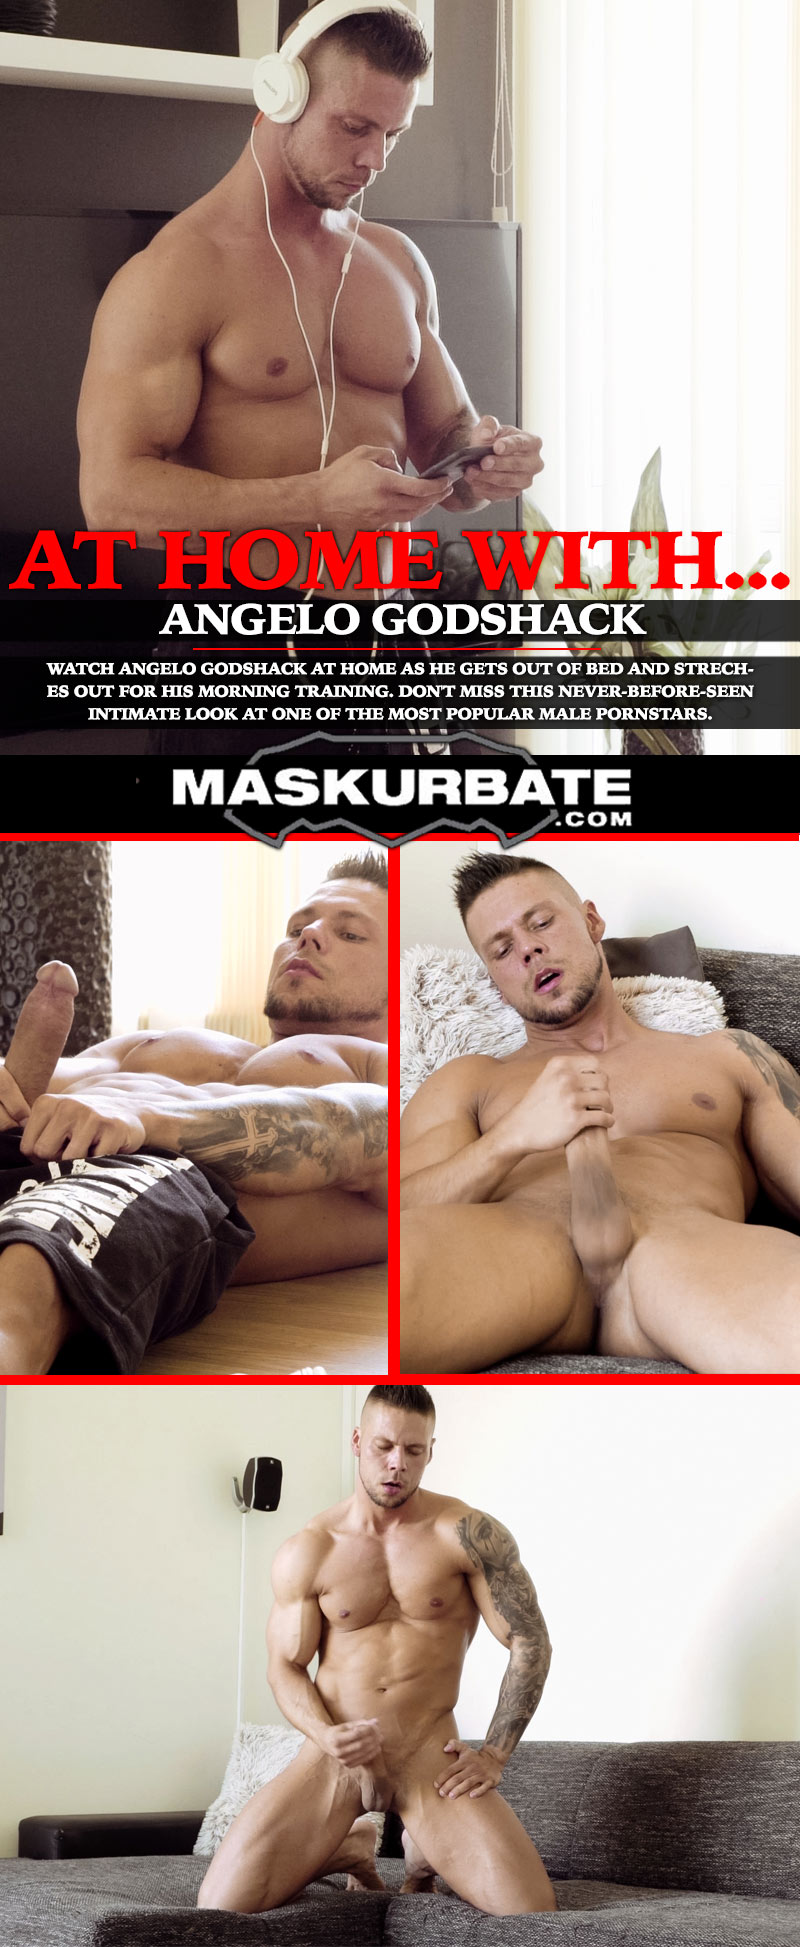 At Home With Angelo Godshack at Maskurbate